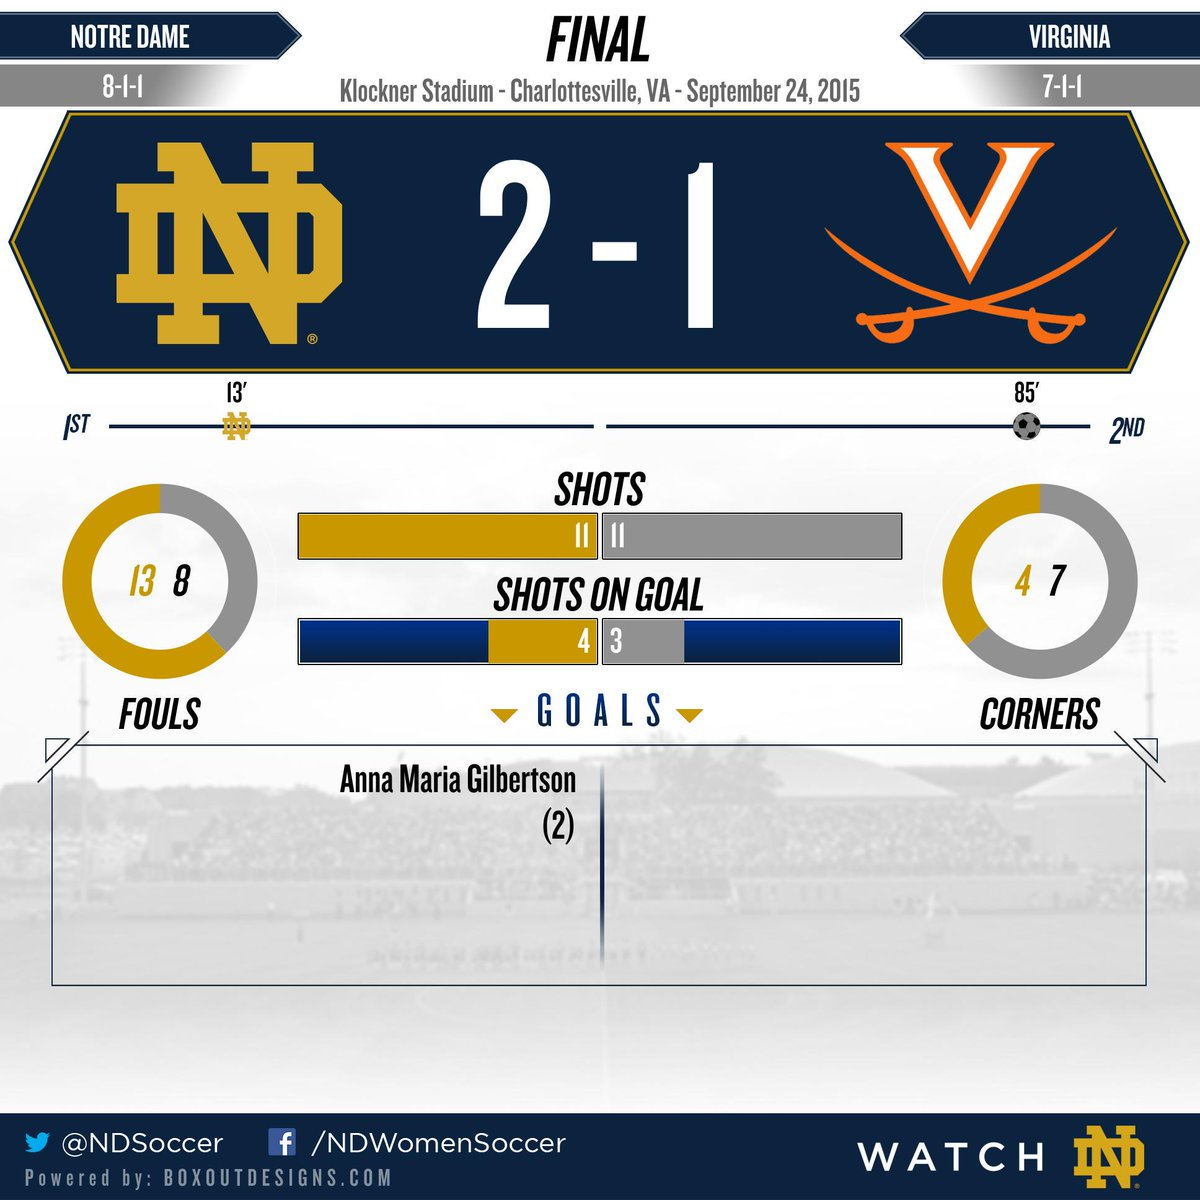 Final Stats. Irish defeat #1 UVA in double overtime! Goals by @anna06maria assists by @Sflores317 & @natalieejacobs! http://t.co/xCo2MSAEhm